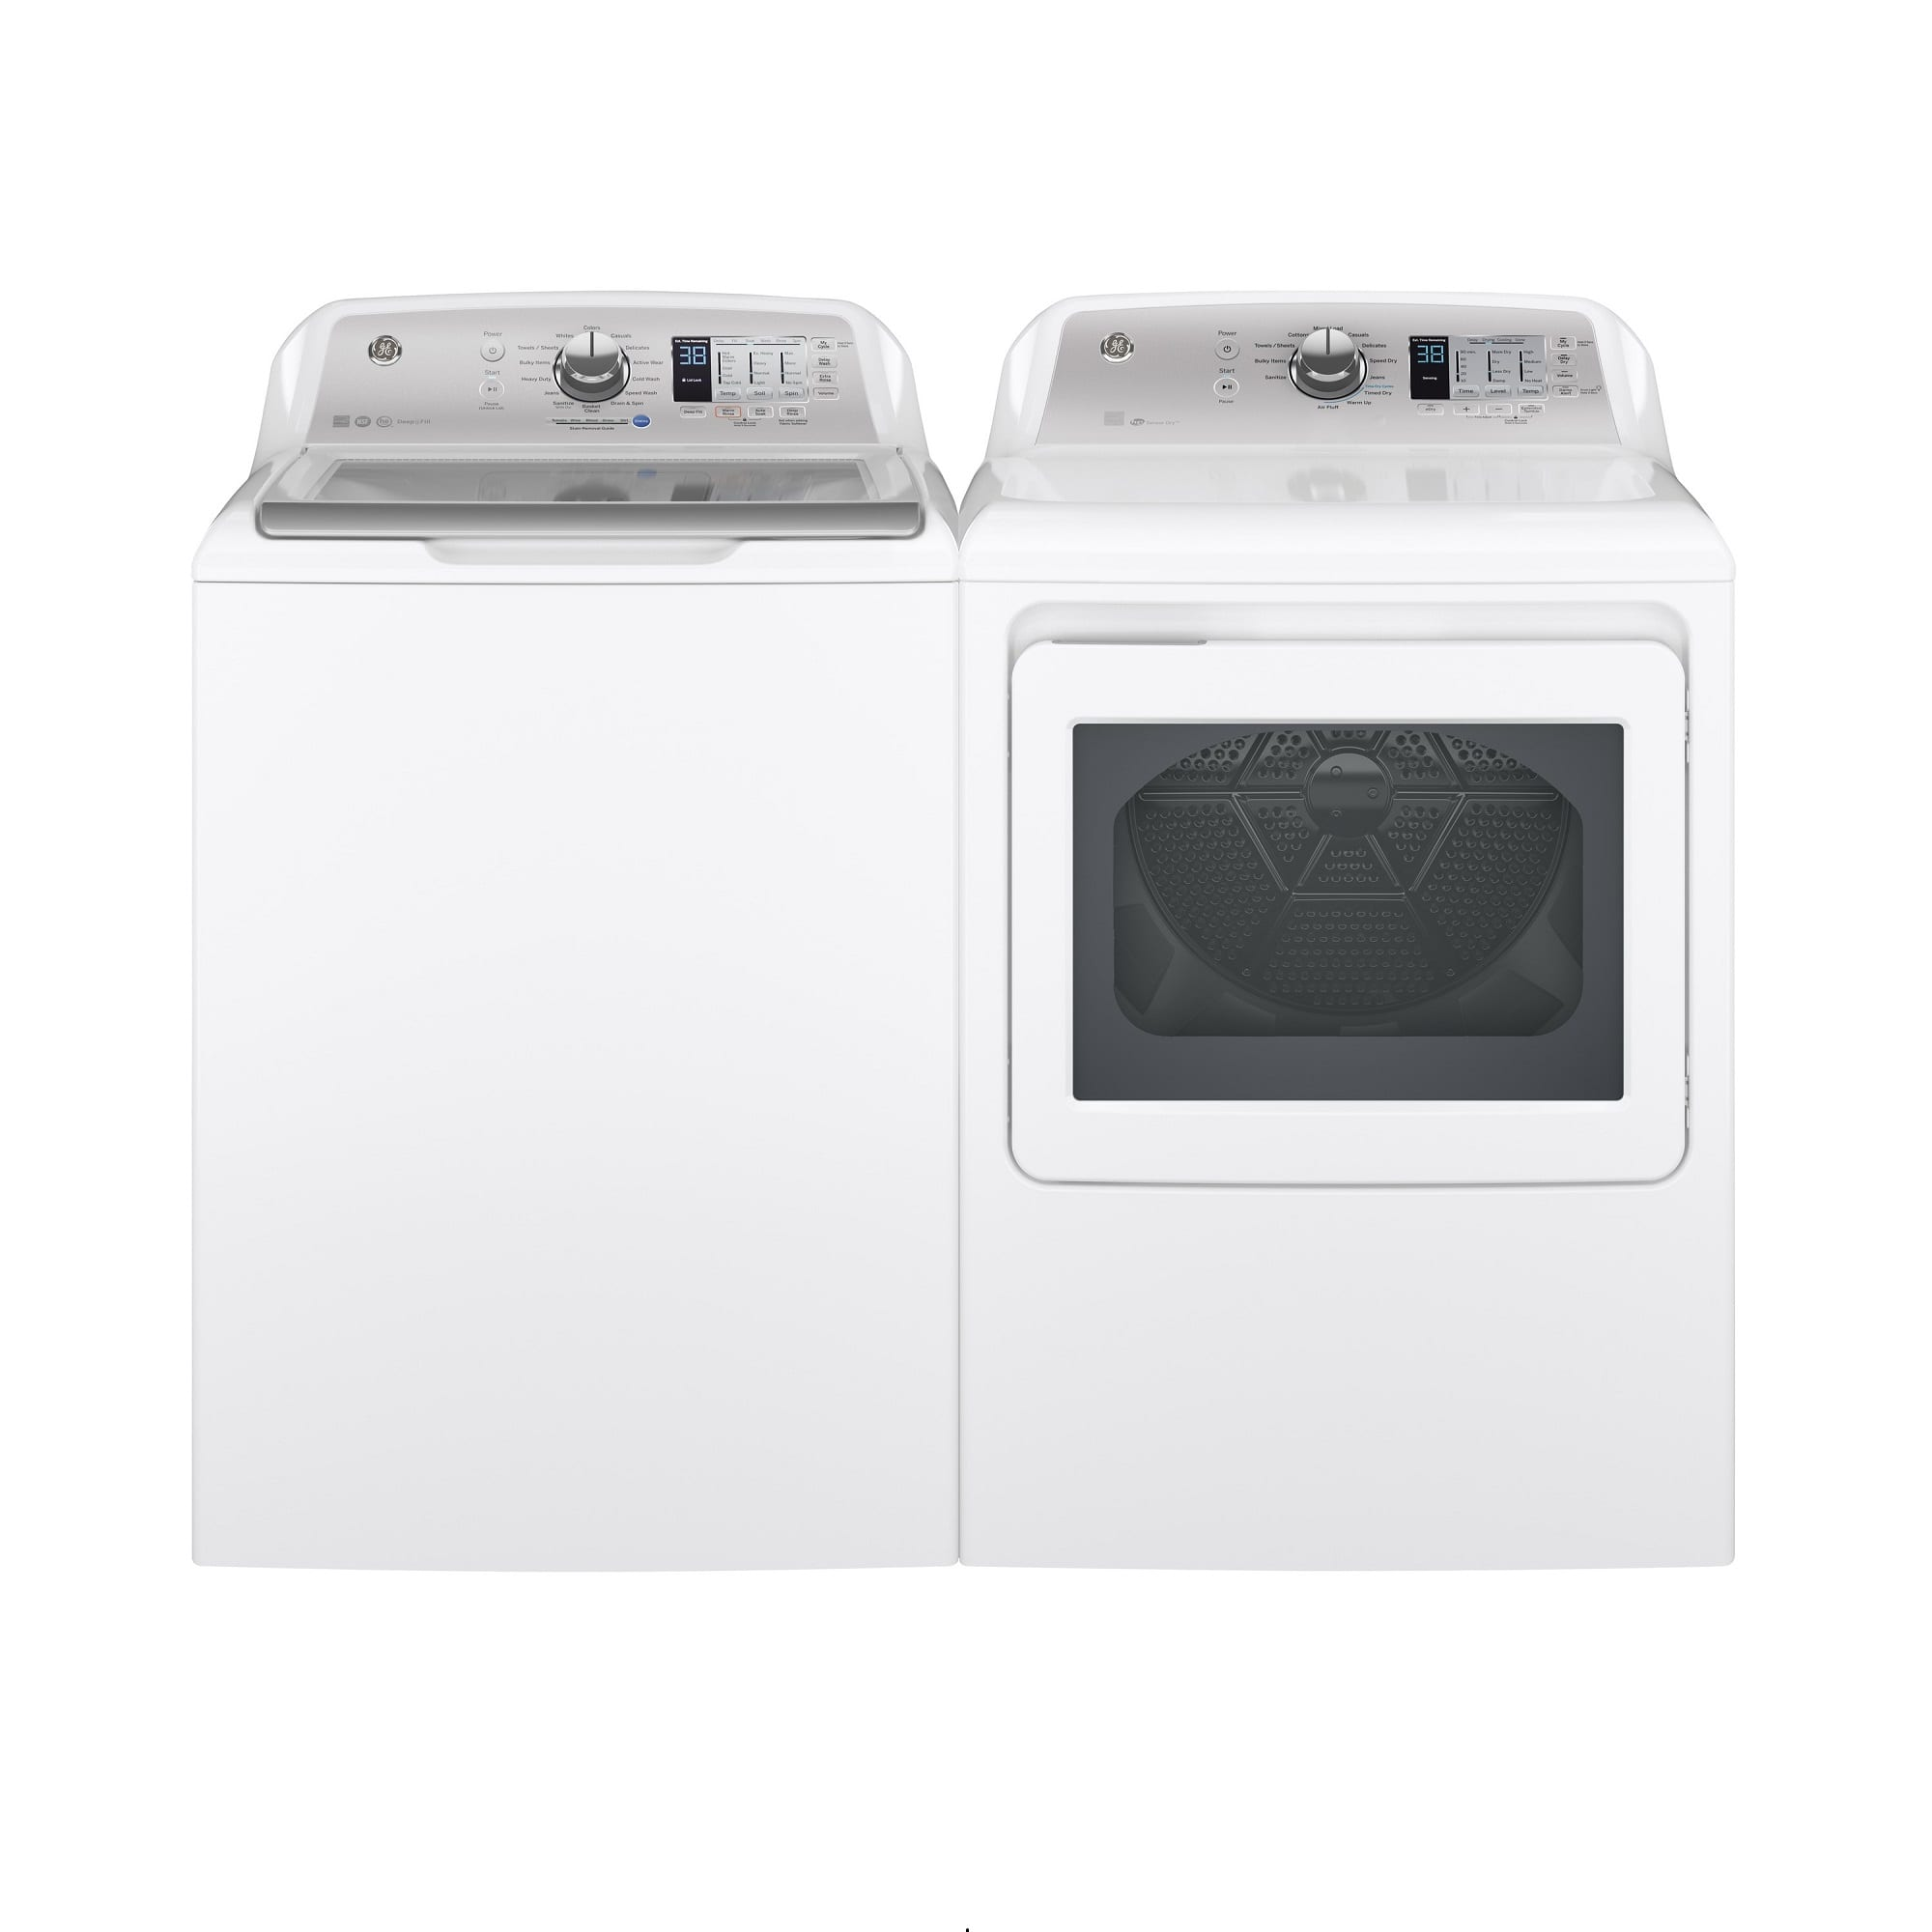 4 5 cu  ft  HE Top Load Washer & 7 4 cu  ft  Electric Dryer